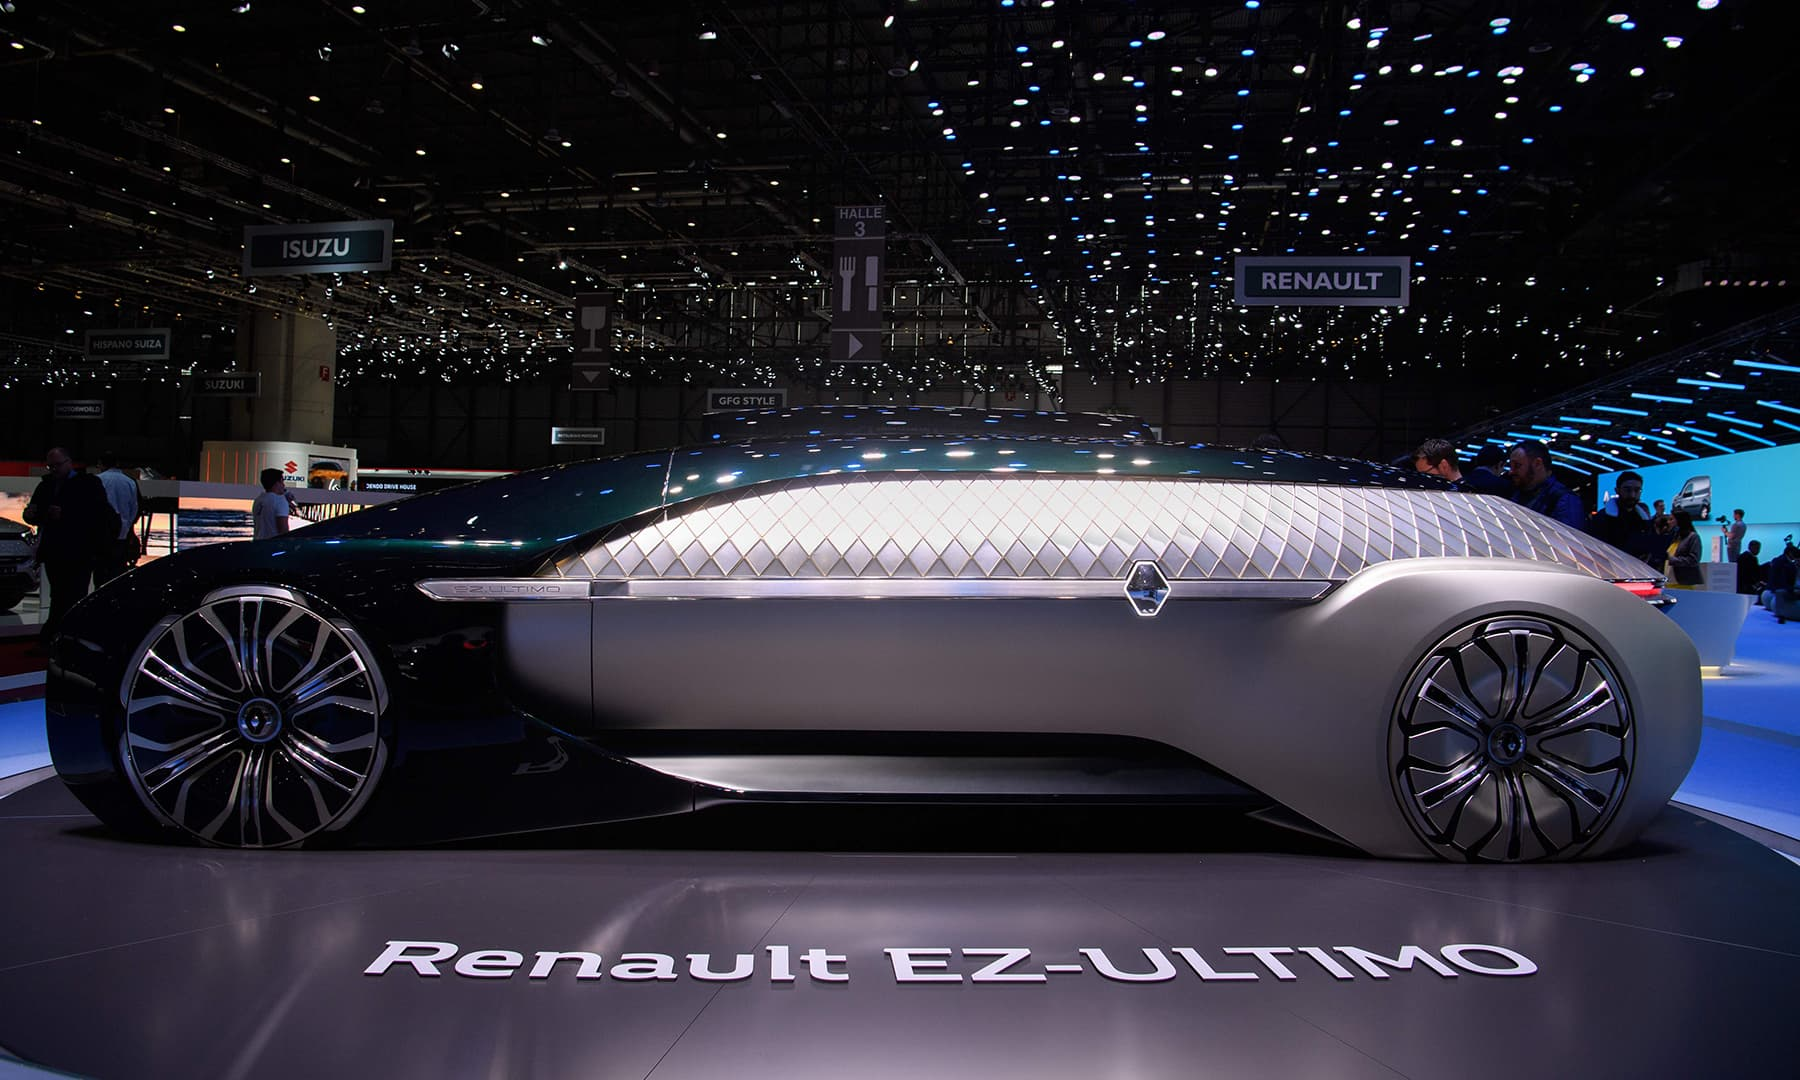 The Renault EZ-ULTIMO concept car is displayed on March 6 during a press day ahead of the Geneva International Motor Show in Geneva. — AFP